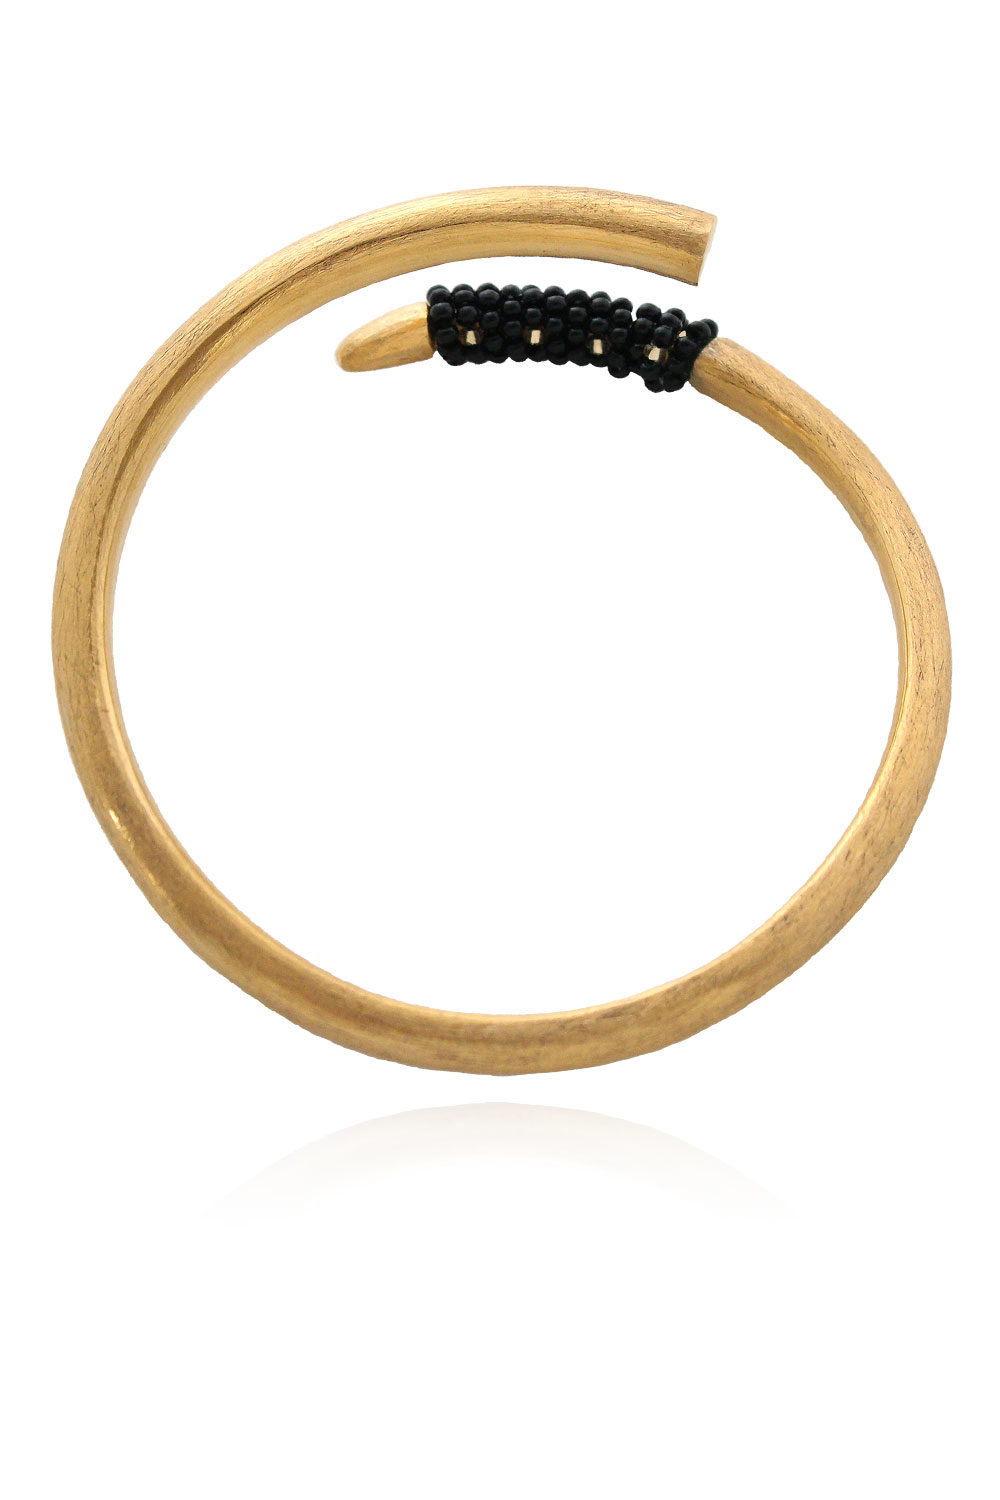 Vogue Tusk Bangle Black Beads Tembo by SHIKHAZURI